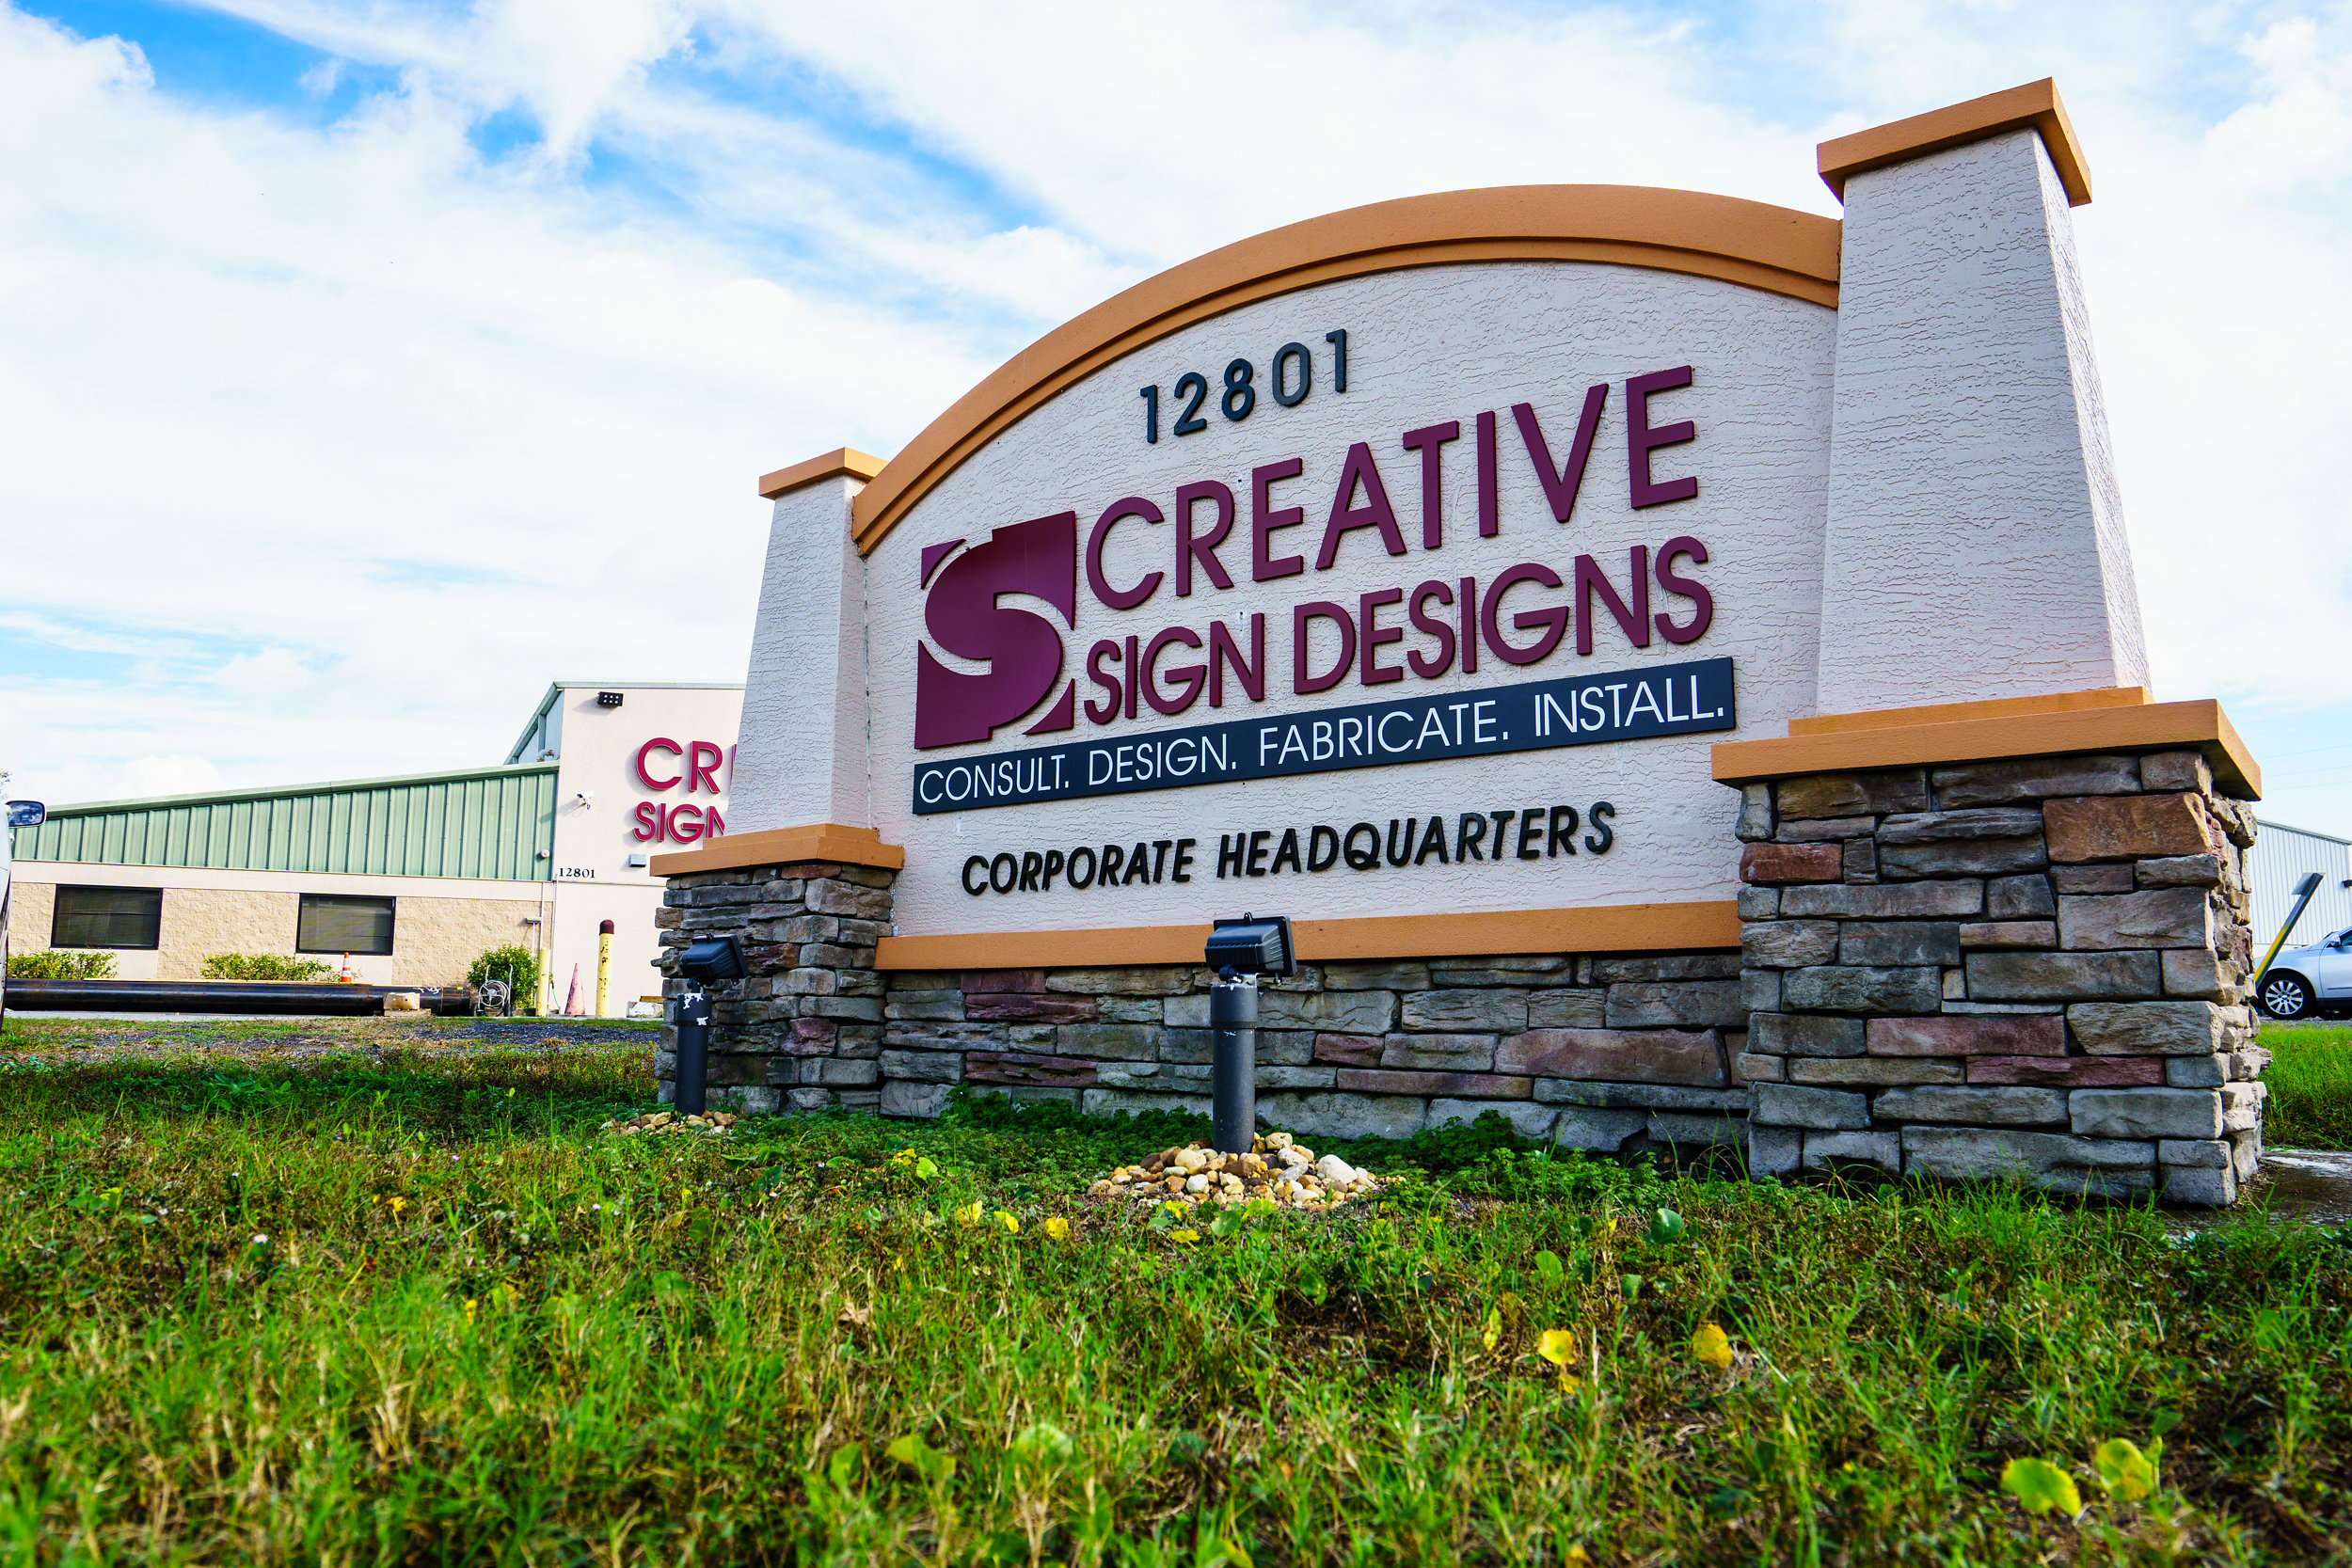 Facilities Warehouses Creative Sign Designs